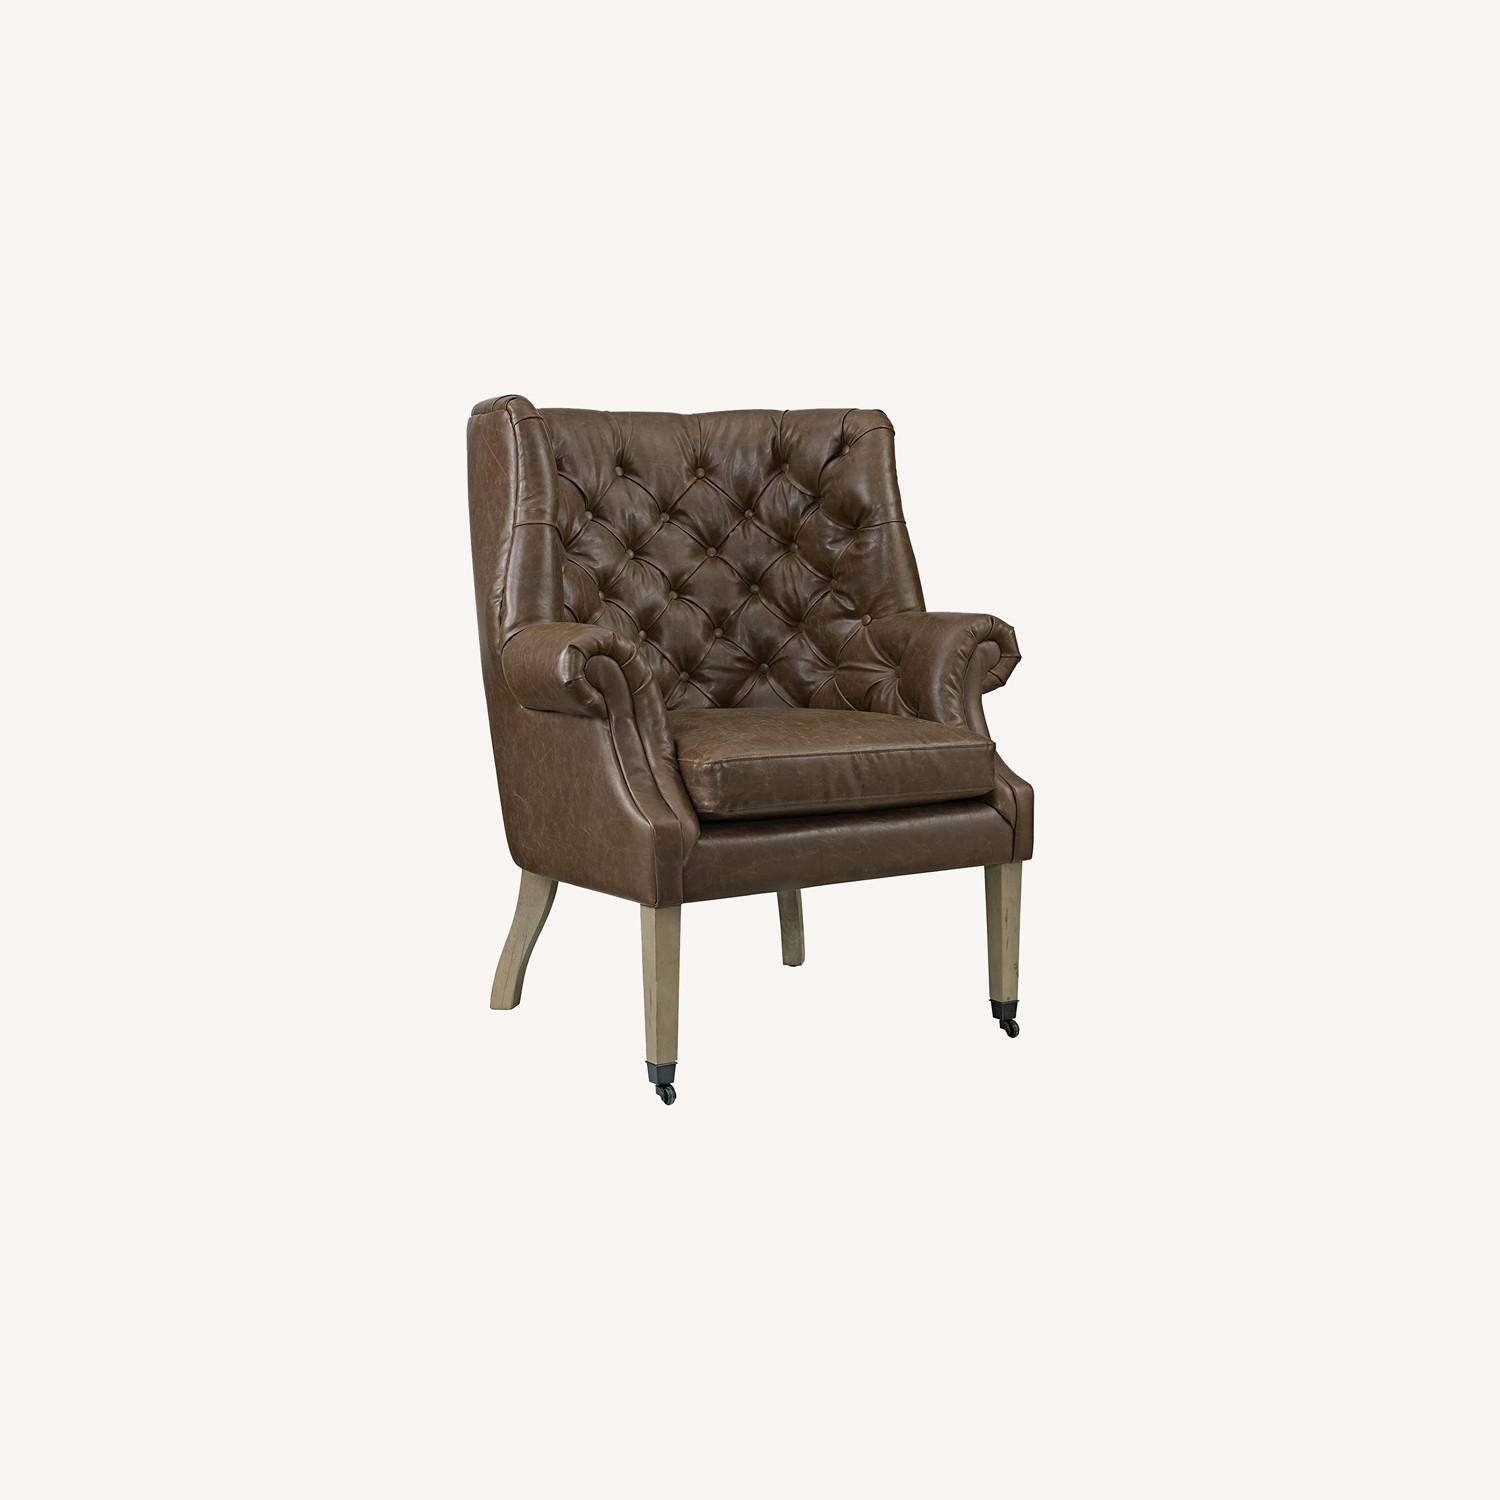 Accent Chair In Brown Vinyl Upholstery Finish - image-6